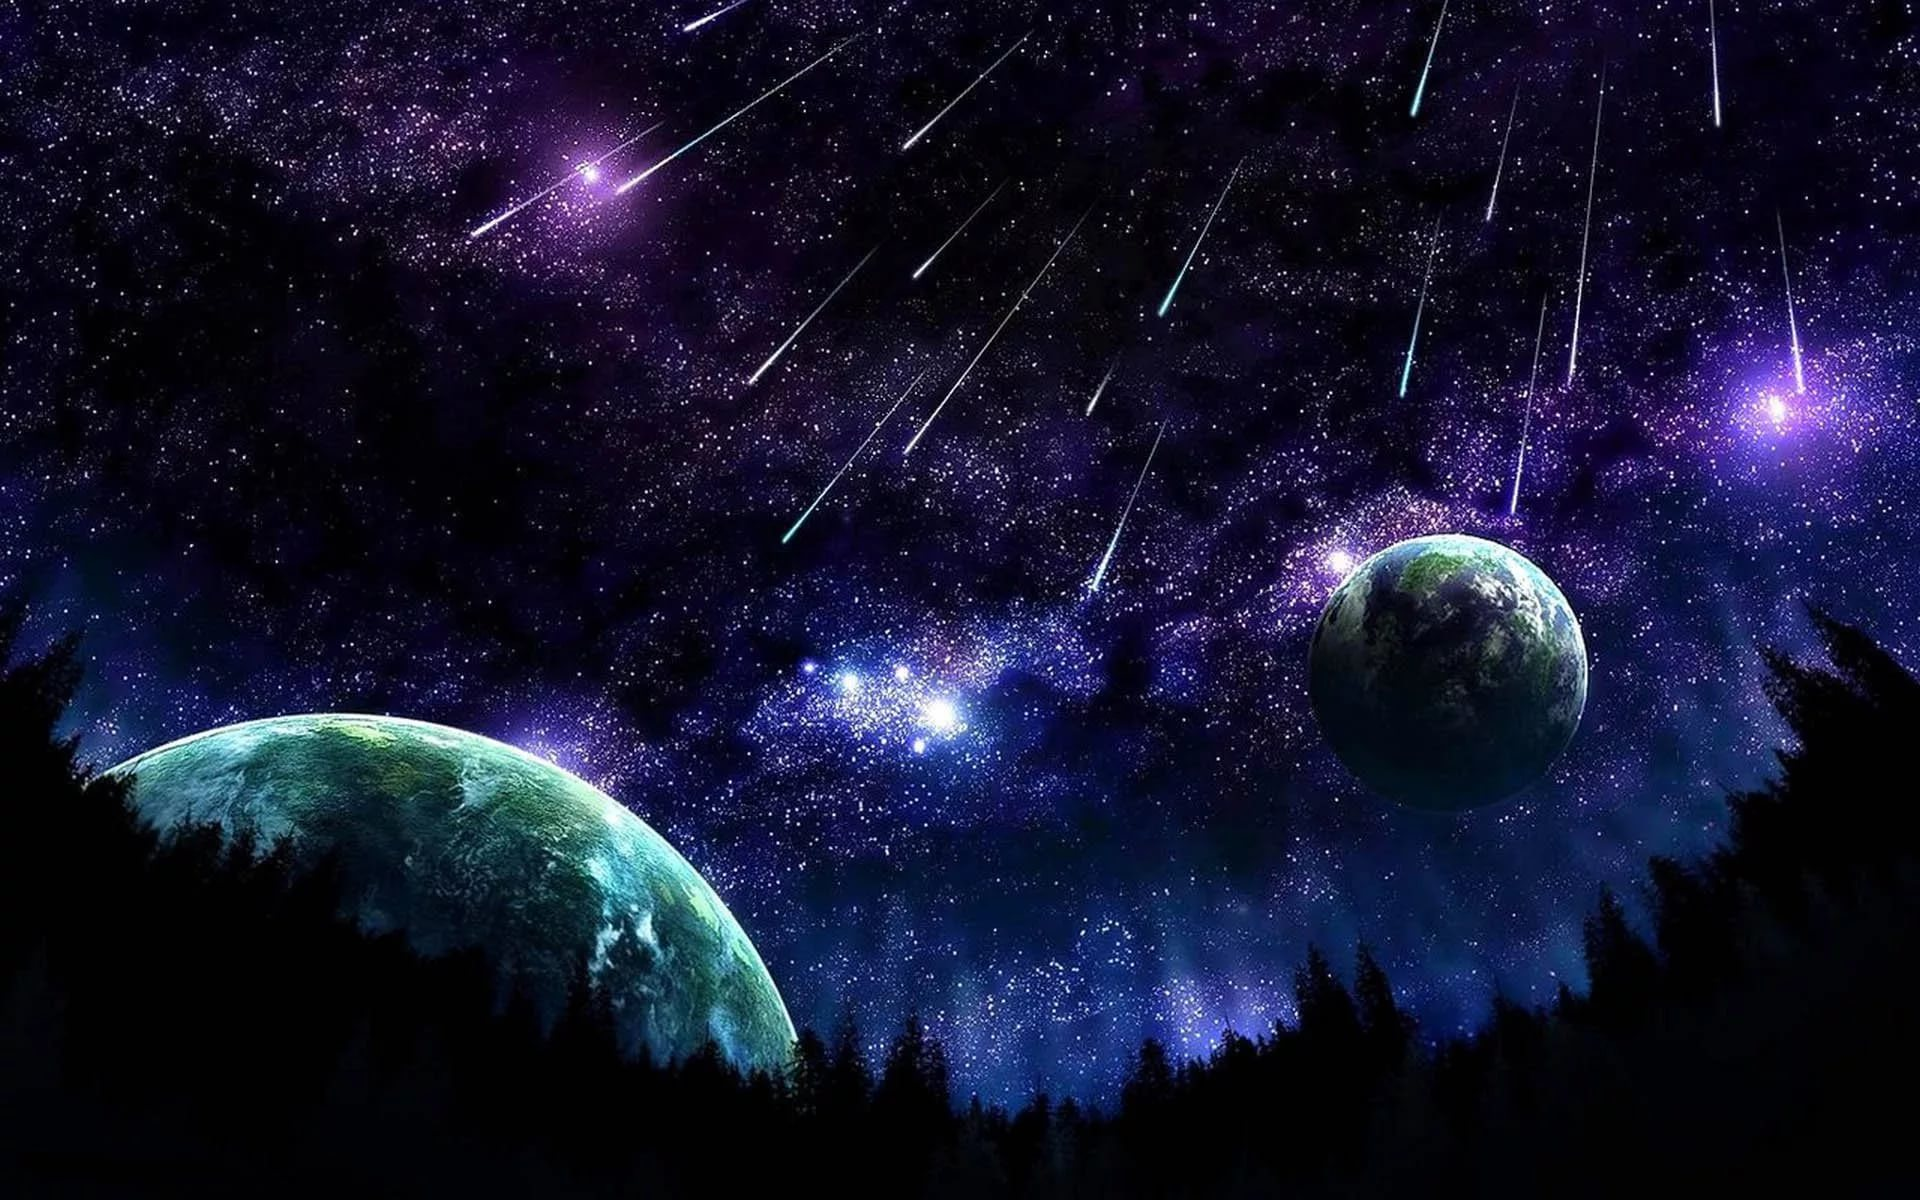 Universe Wallpapers 1080p 75 Images: HD Wallpapers 1080p Space